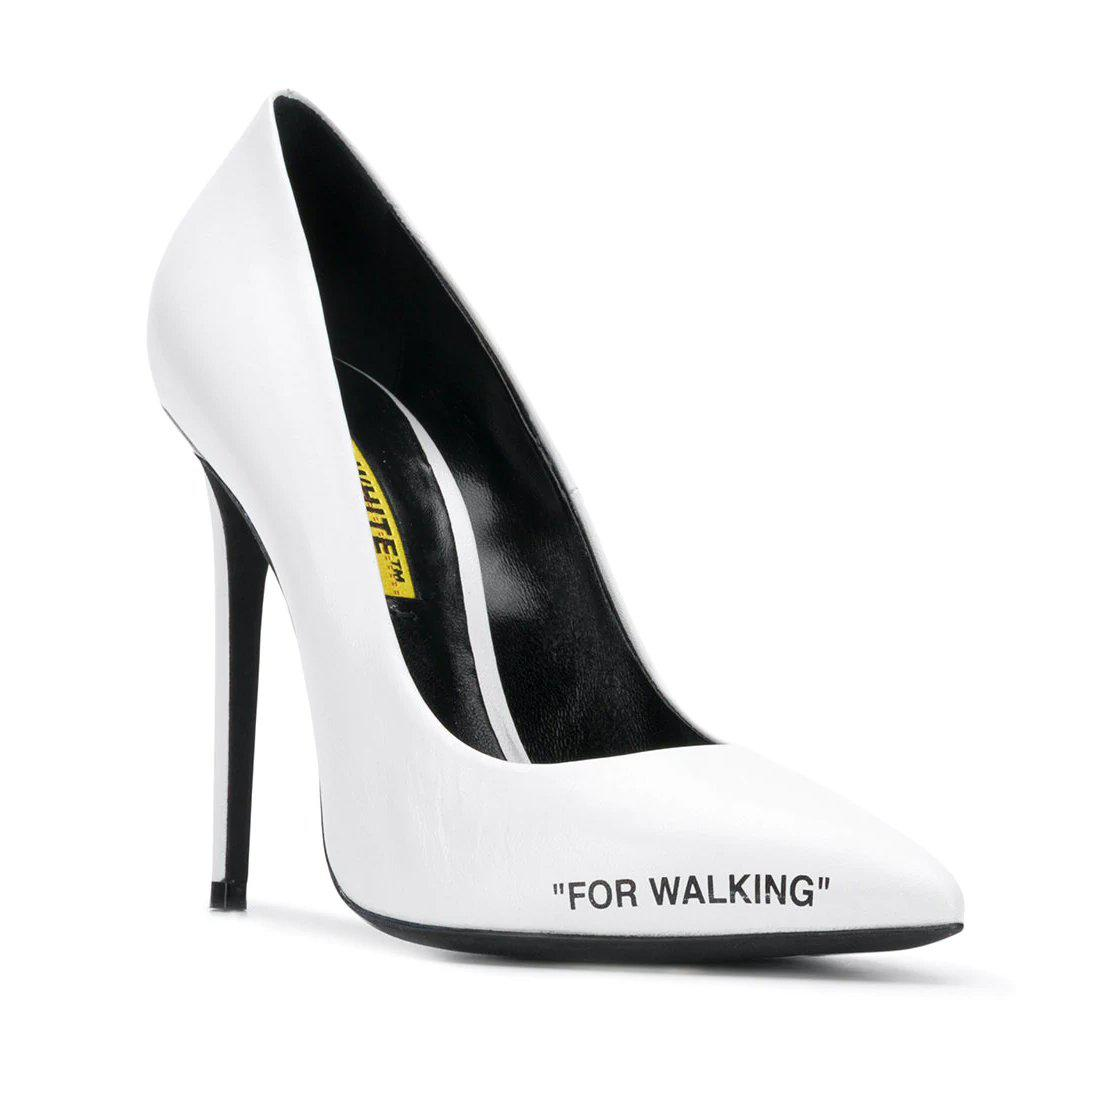 5c41c67d1 Off-White c/o Virgil Abloh White High Heel Pumps By in White - Lyst